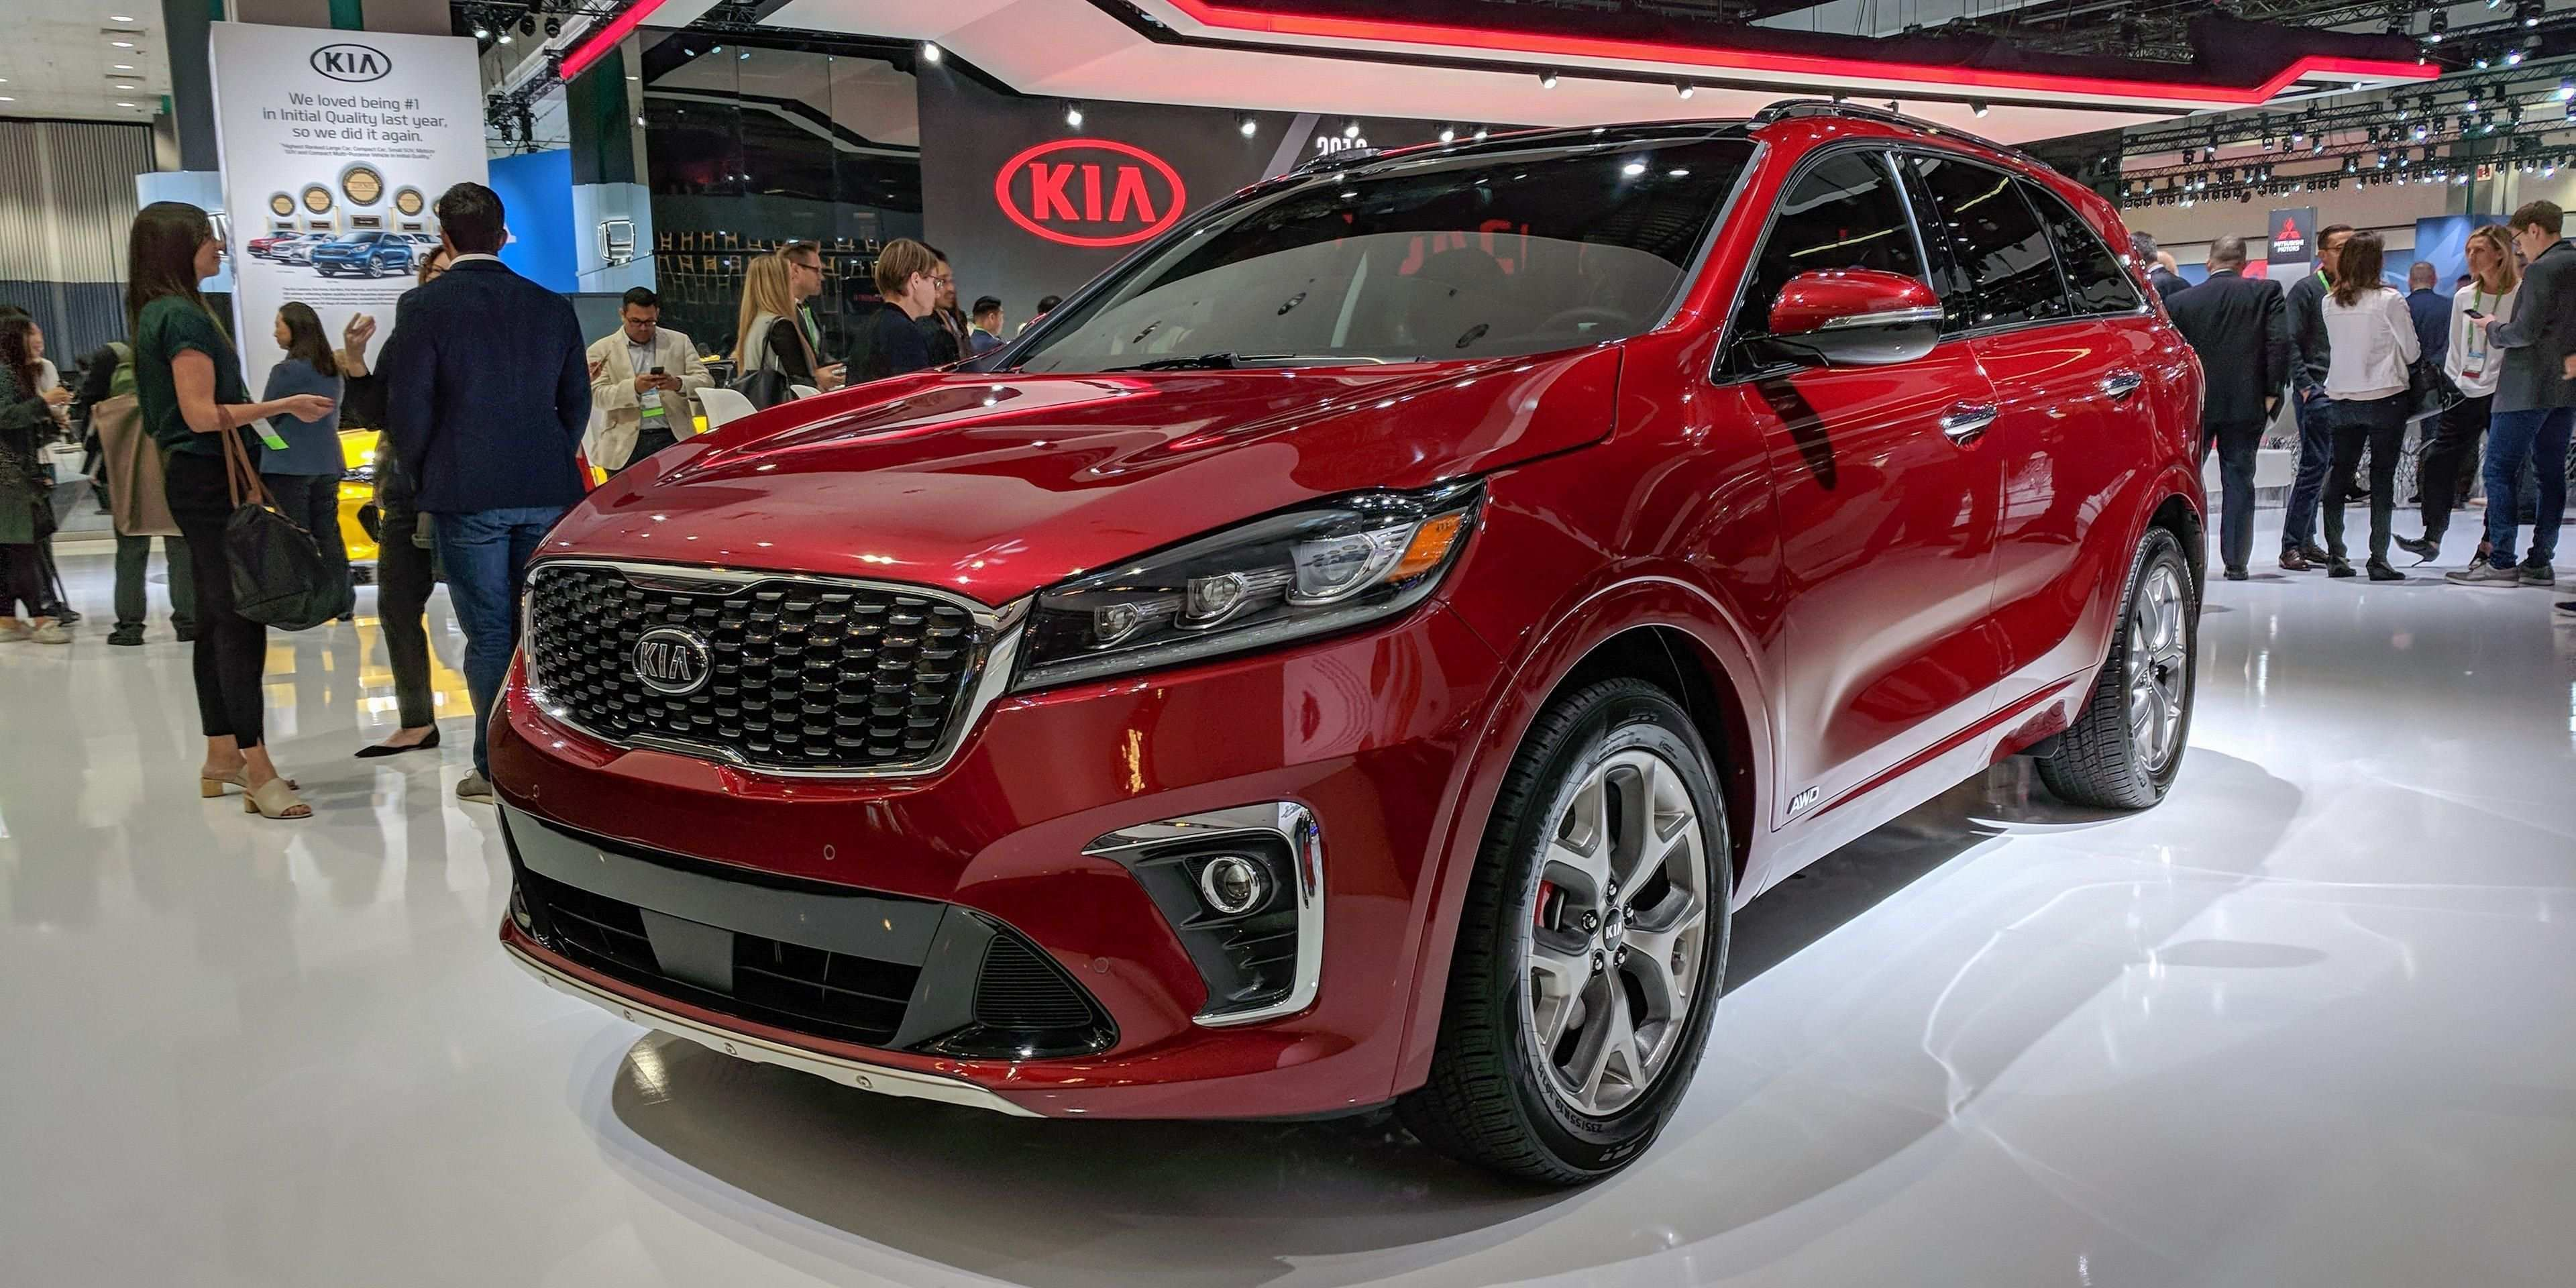 47 New 2019 Kia Sorento Release Date Price And Release Date